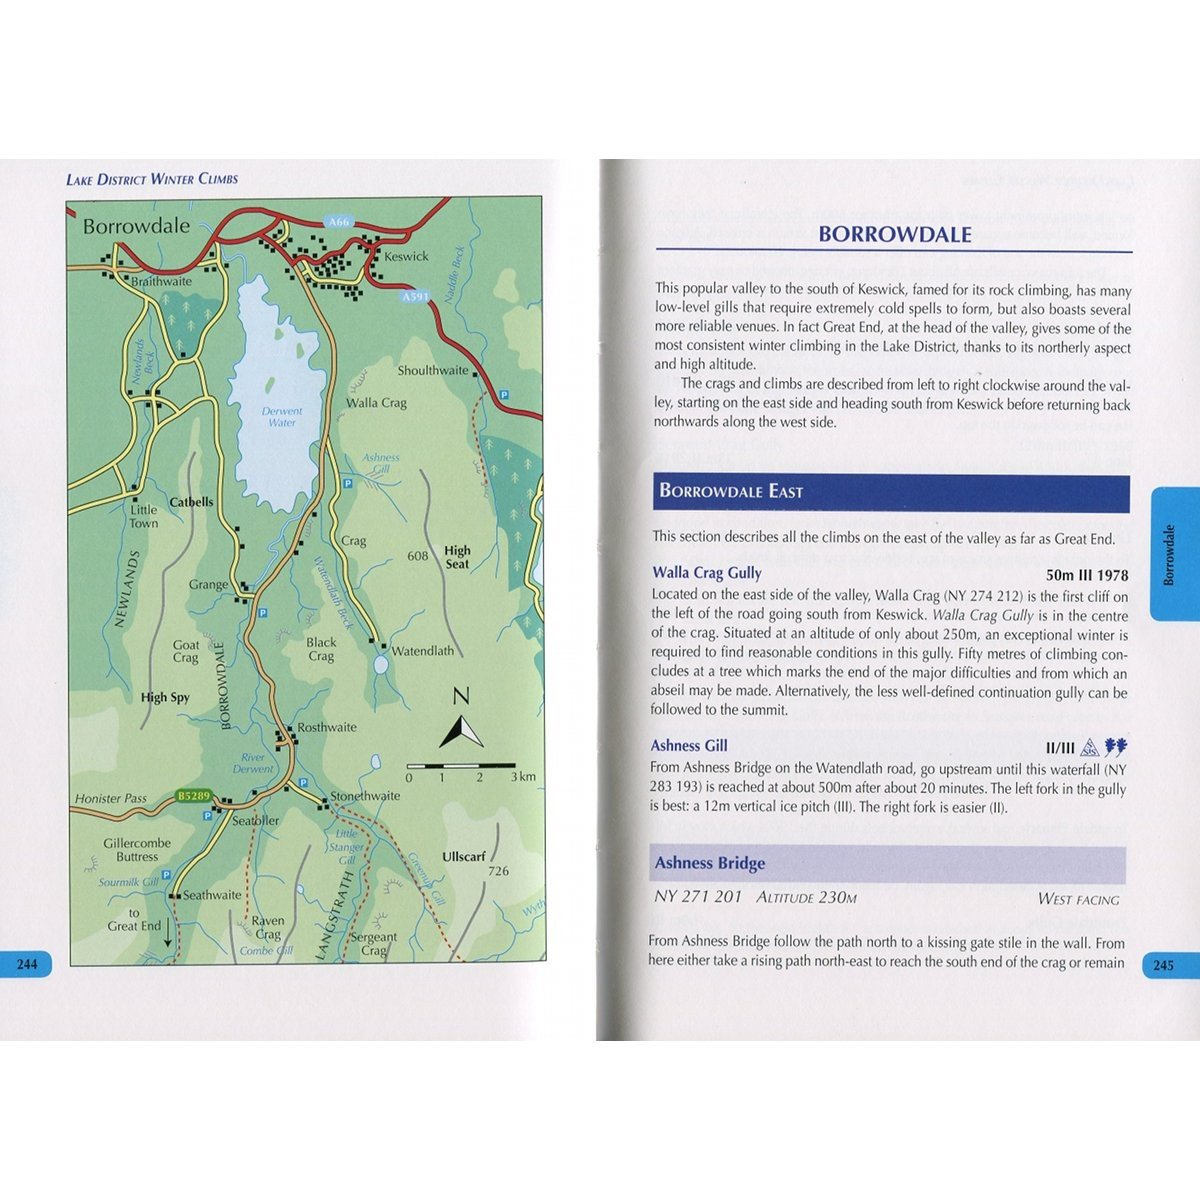 Lake District Winter Climbs, photos, maps and topo examples